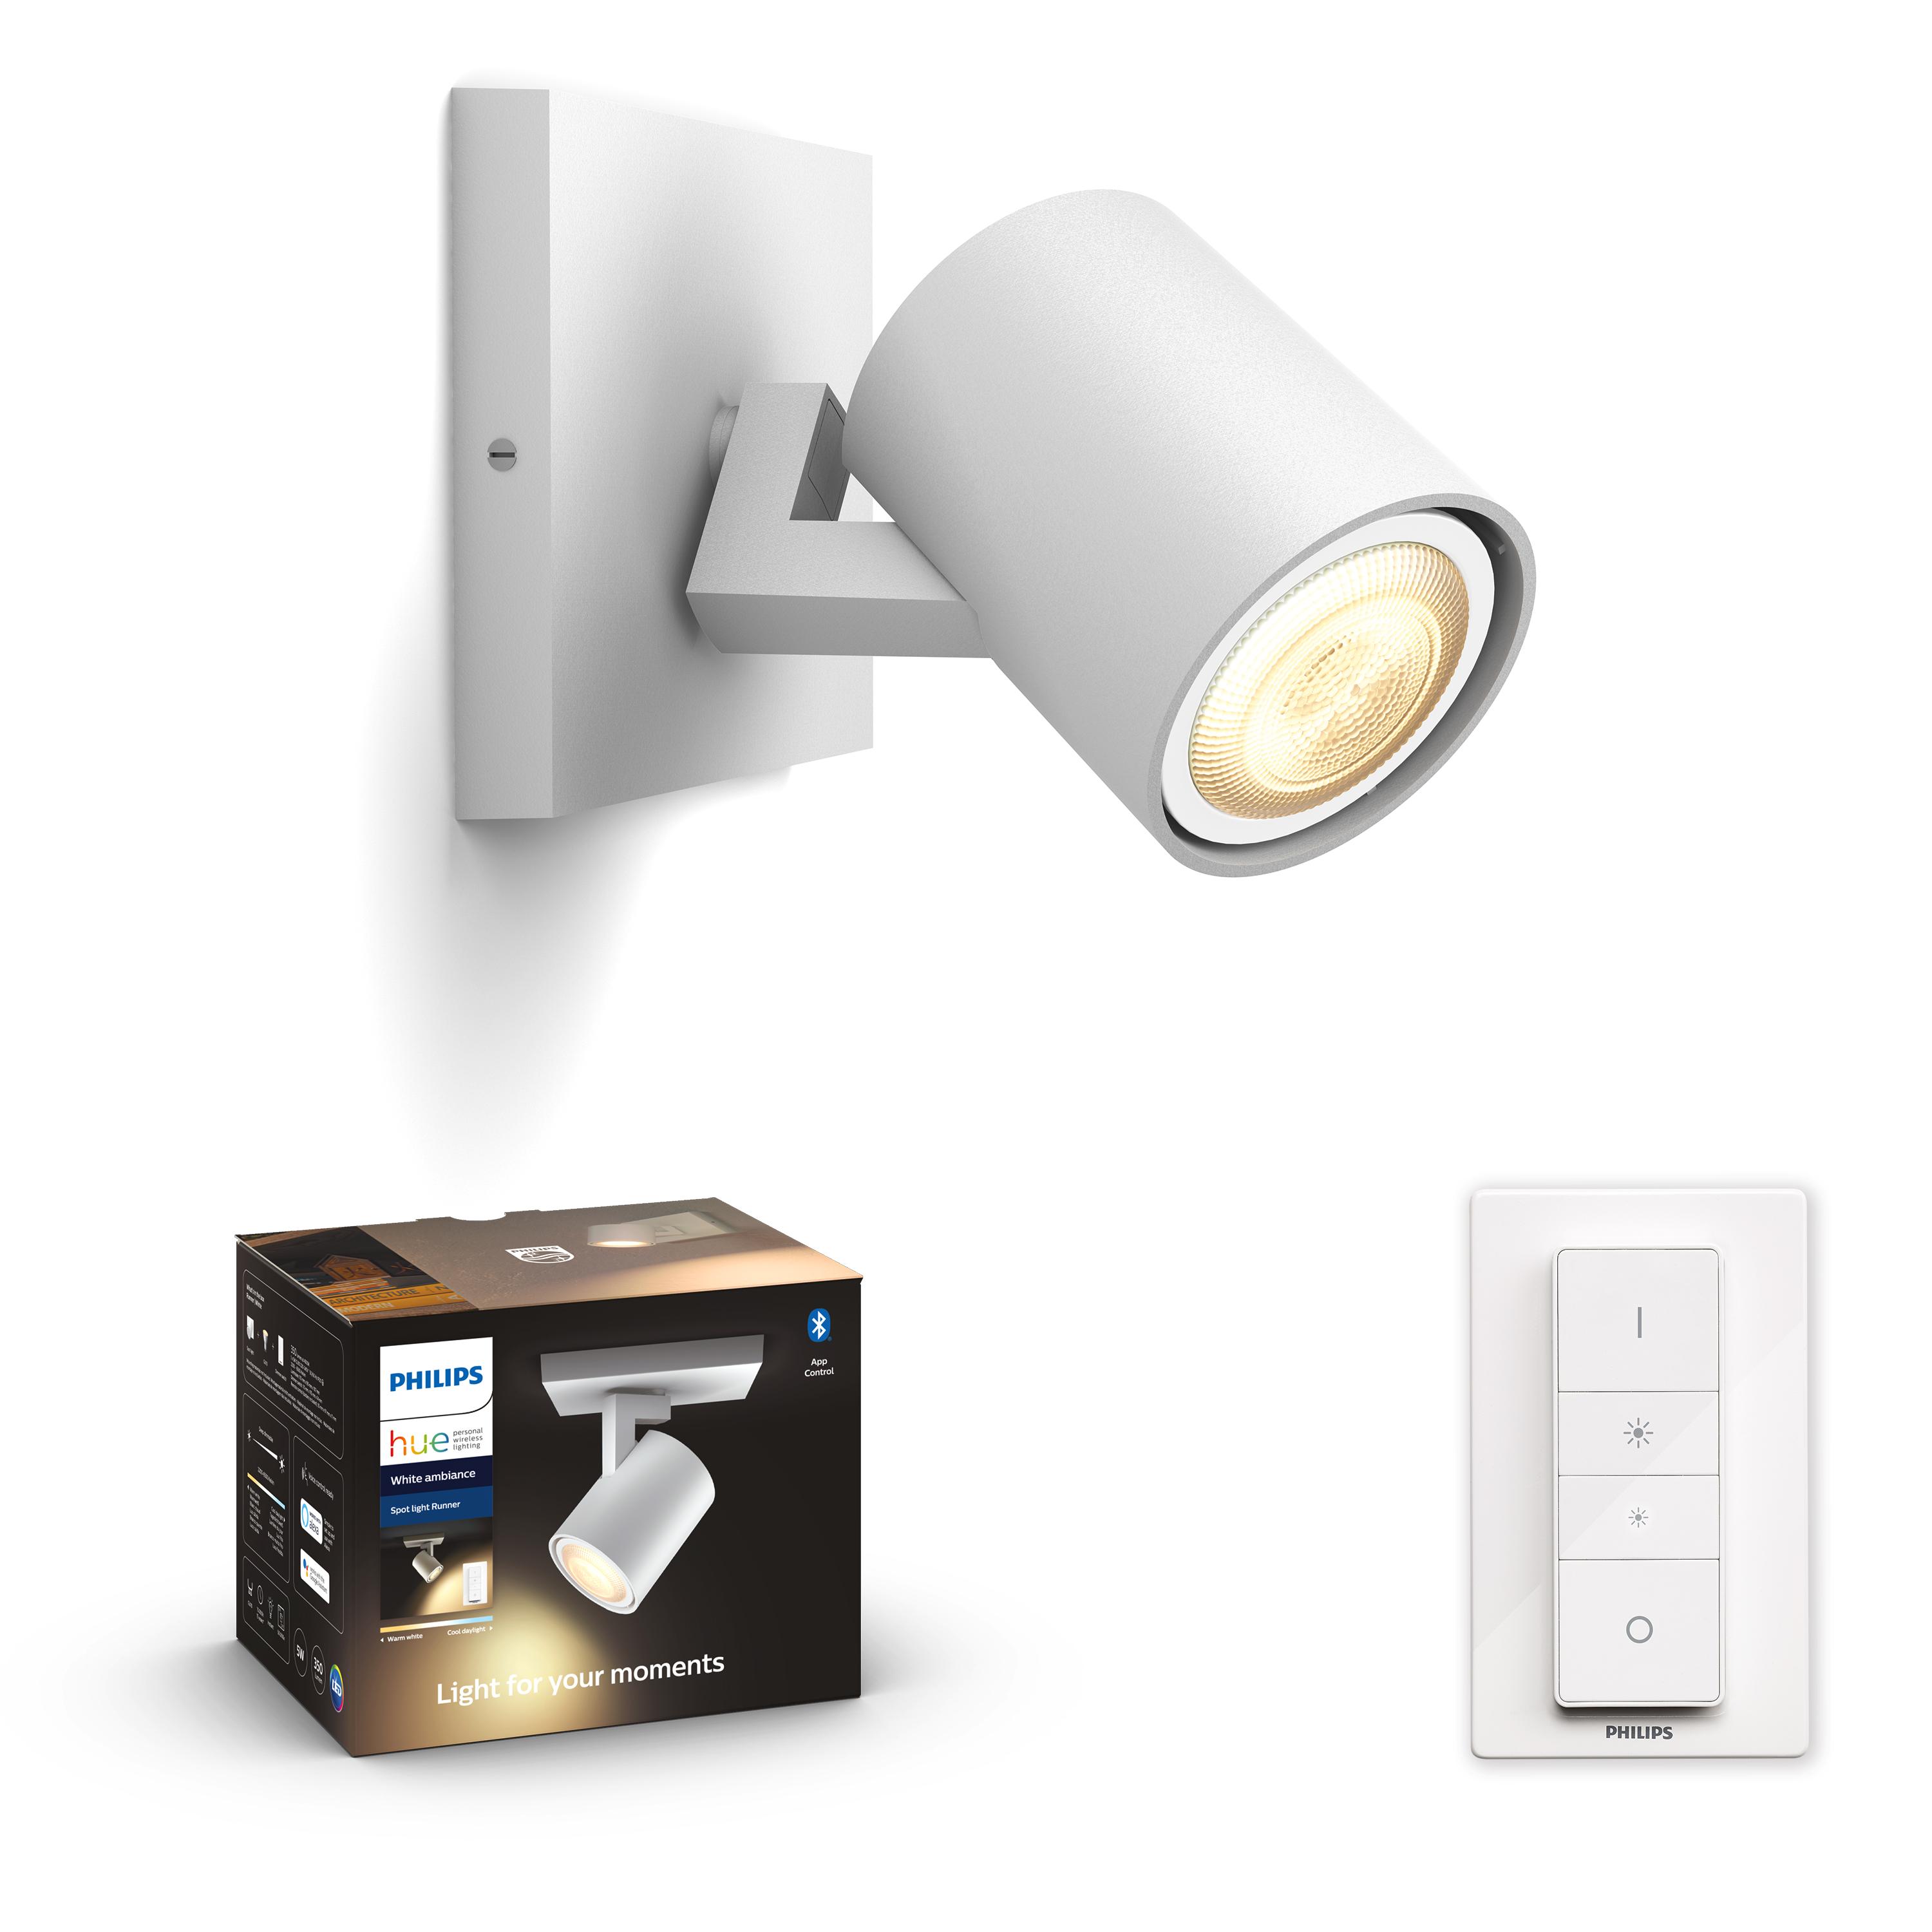 Philips Hue - Runner Hue single spot white 1x5.5W 230V - White Ambiance Bluetooth Dimmer Included